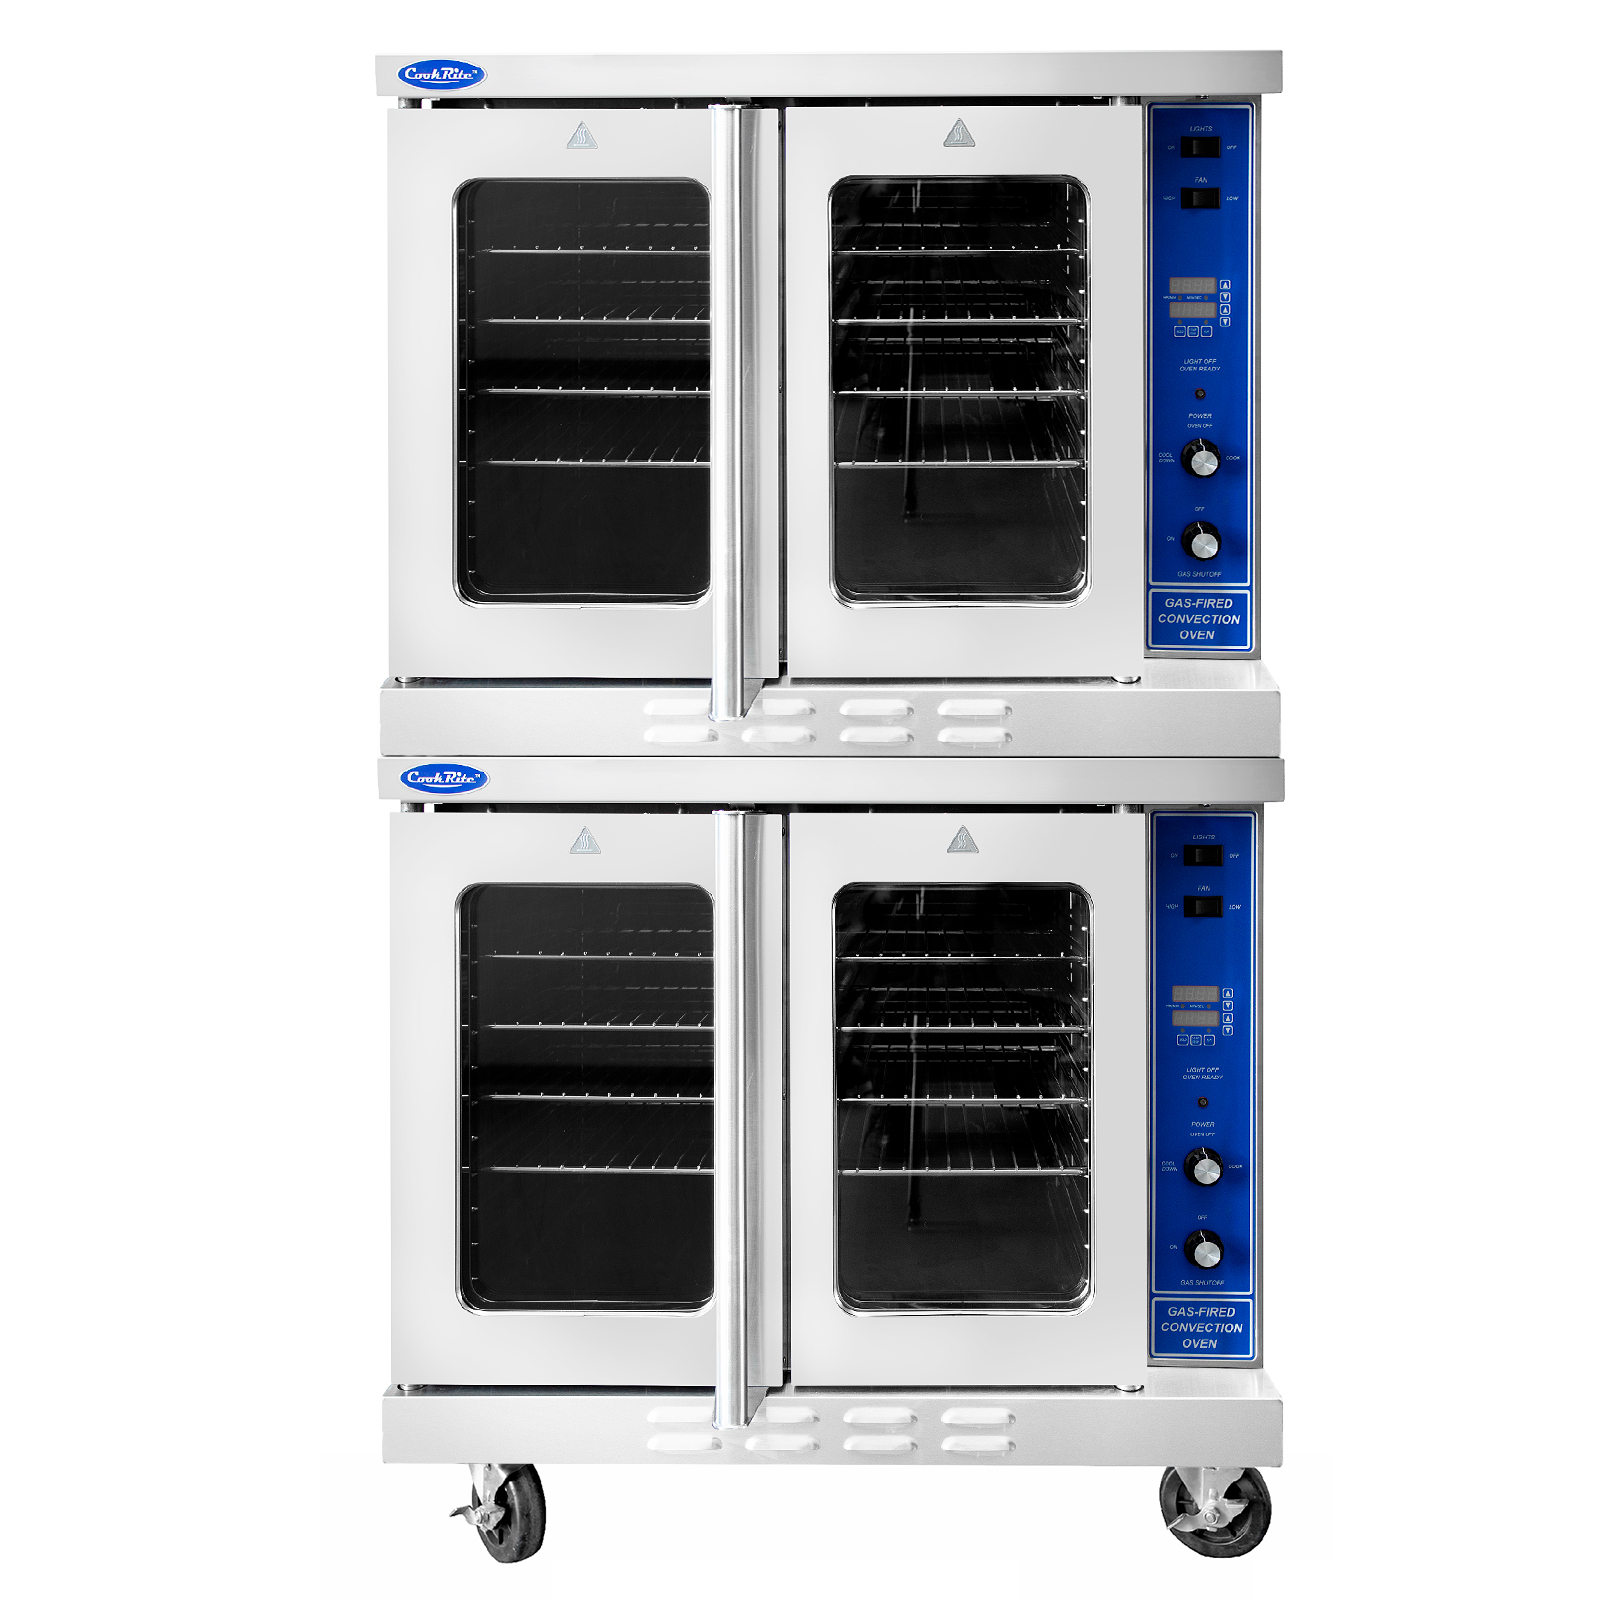 ATCO-513B-2 Gas Convection Ovens (Bakery Depth)